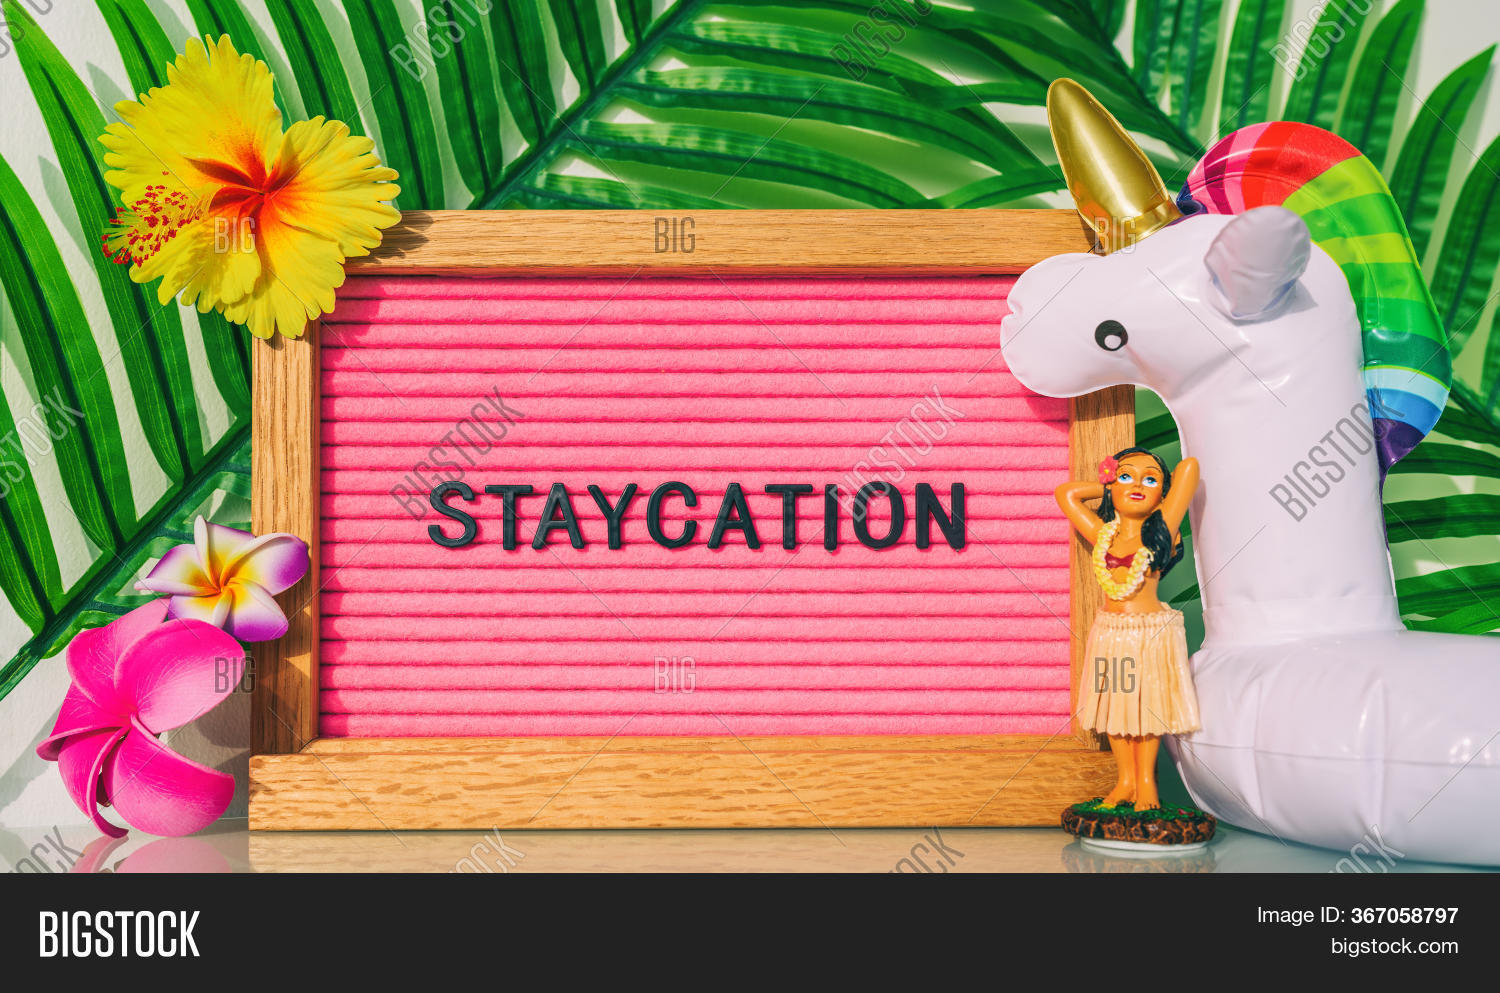 Staycation Sign Summer Image Photo Free Trial Bigstock